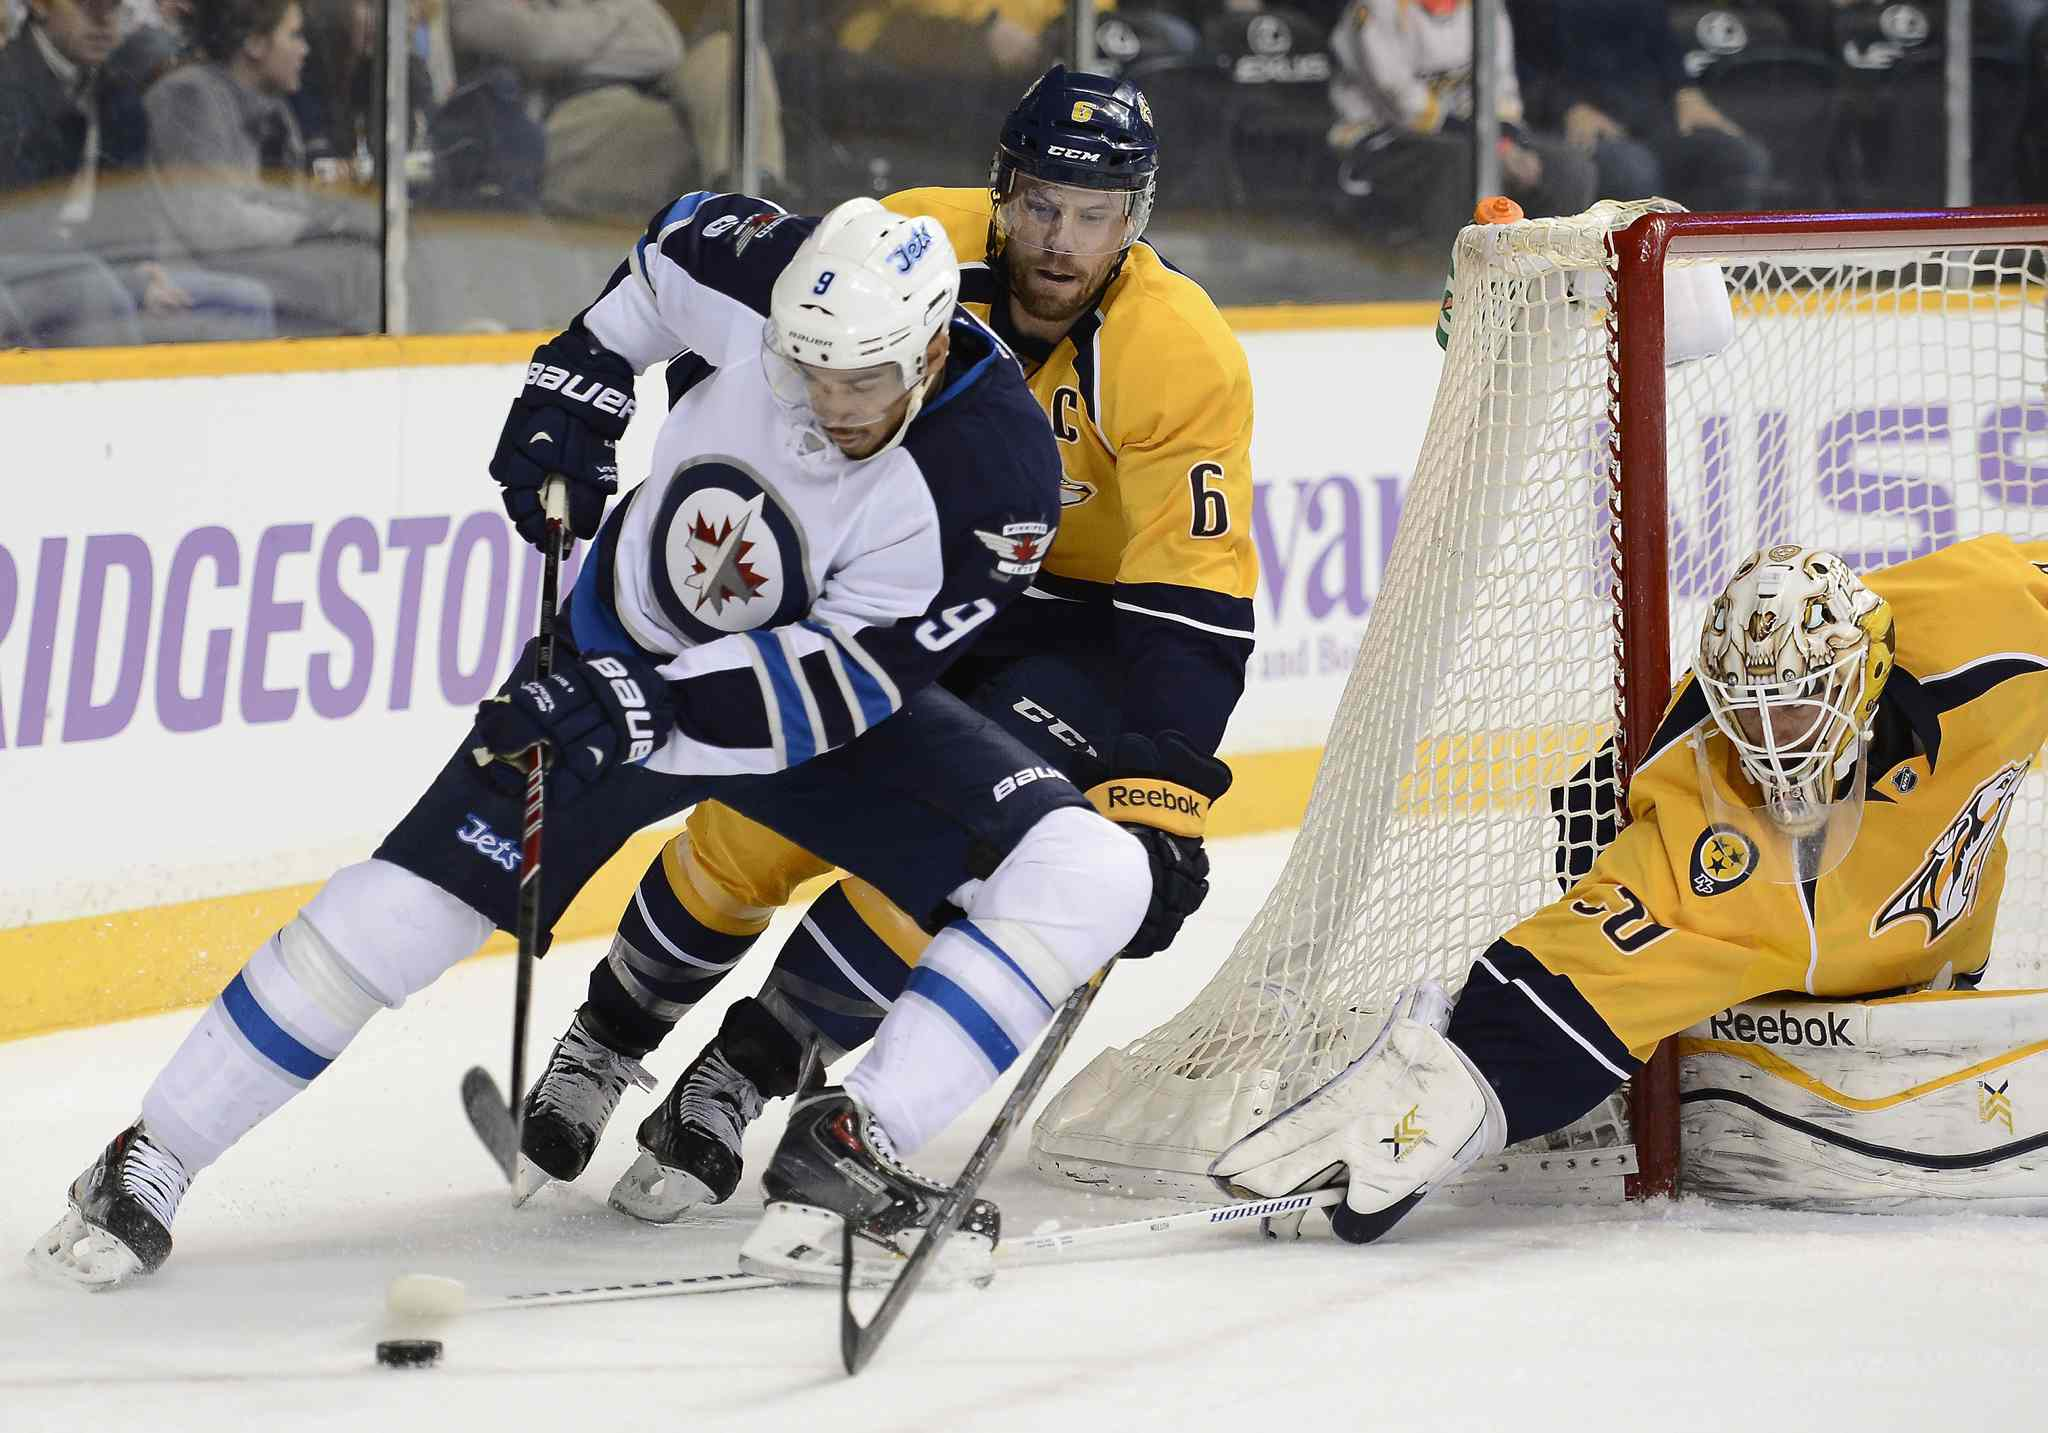 Evander Kane brings the puck around the net as he is shadowed by Nashville Predators defenceman Shea Weber in Nashville.